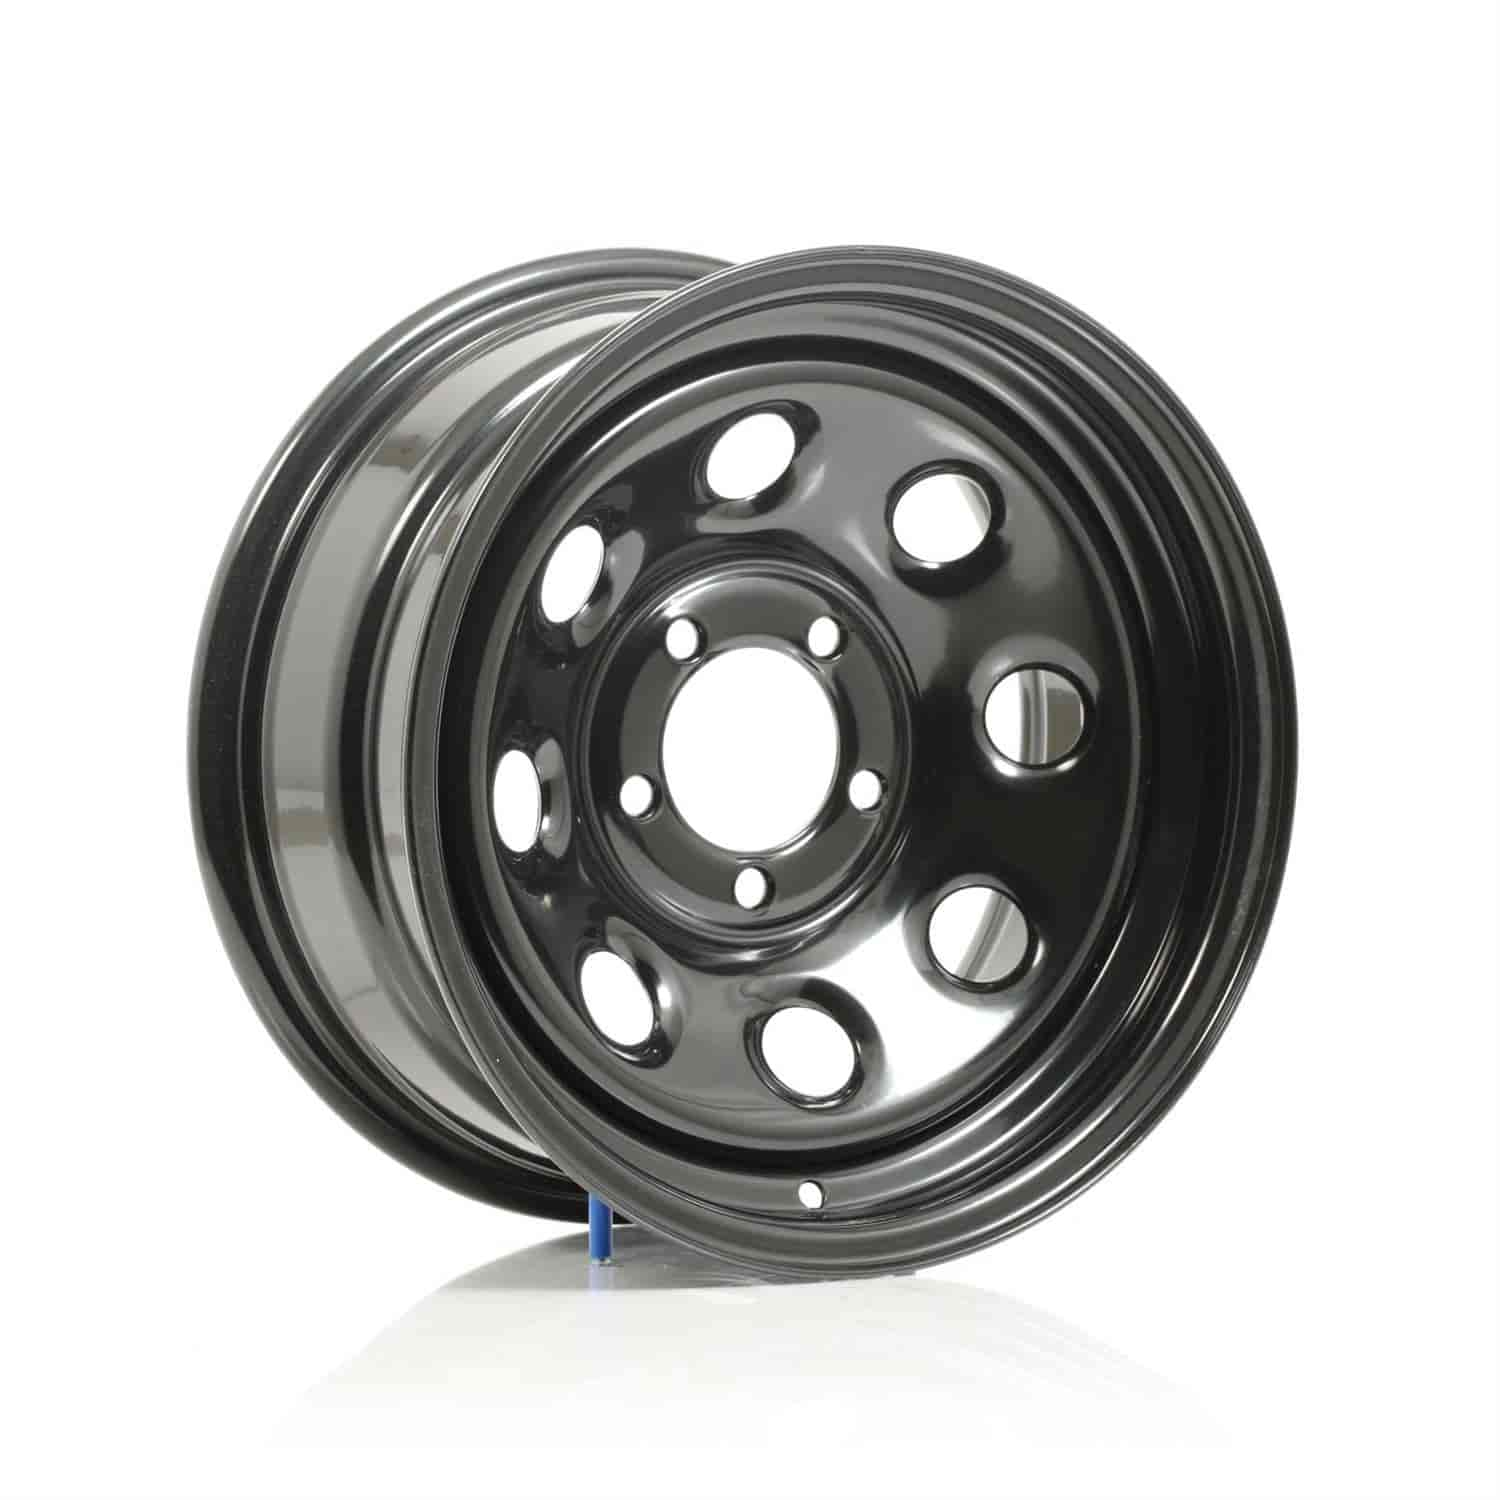 Cragar 3978980 - Cragar Black Soft 8 Wheels